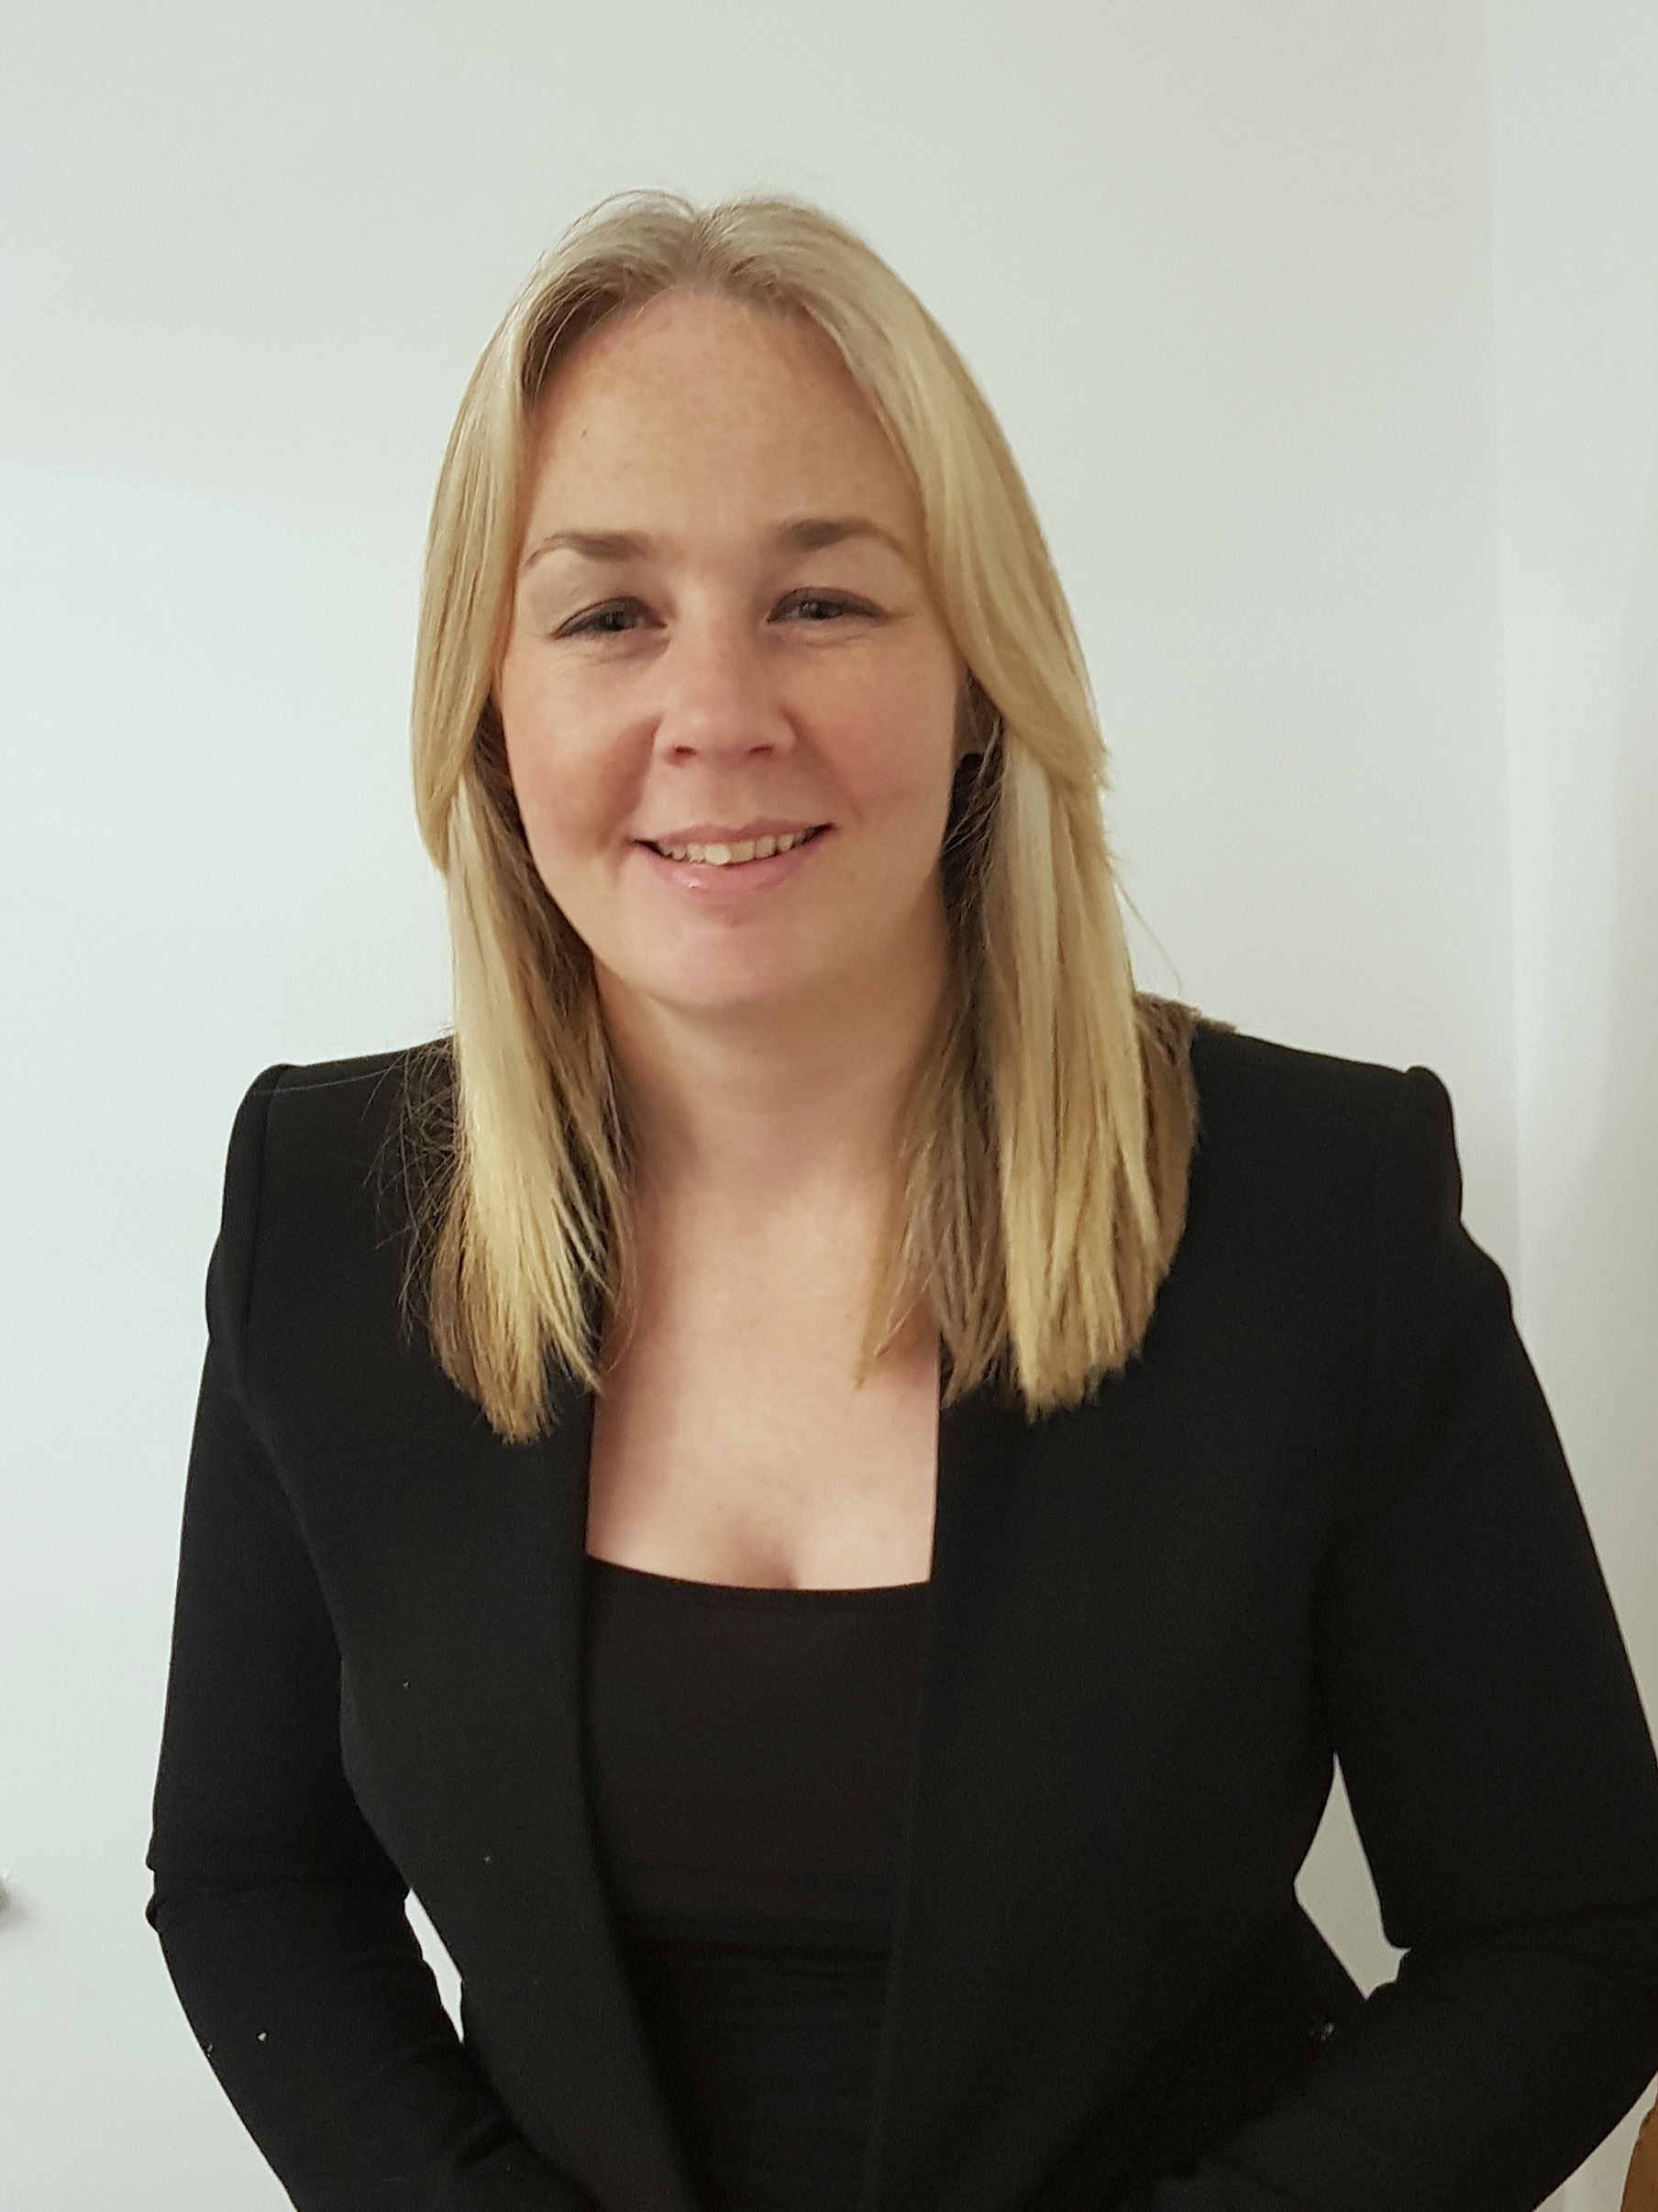 Fiona Delaney - VIQI Treasurer   I have worked in Education and Education Finance for the majority of my career. Initially, for Halton Borough Council followed by Liverpool City Council. For the past 18 years I have worked for Sefton Metropolitan Borough Council starting as a School Finance Officer…..  click for more